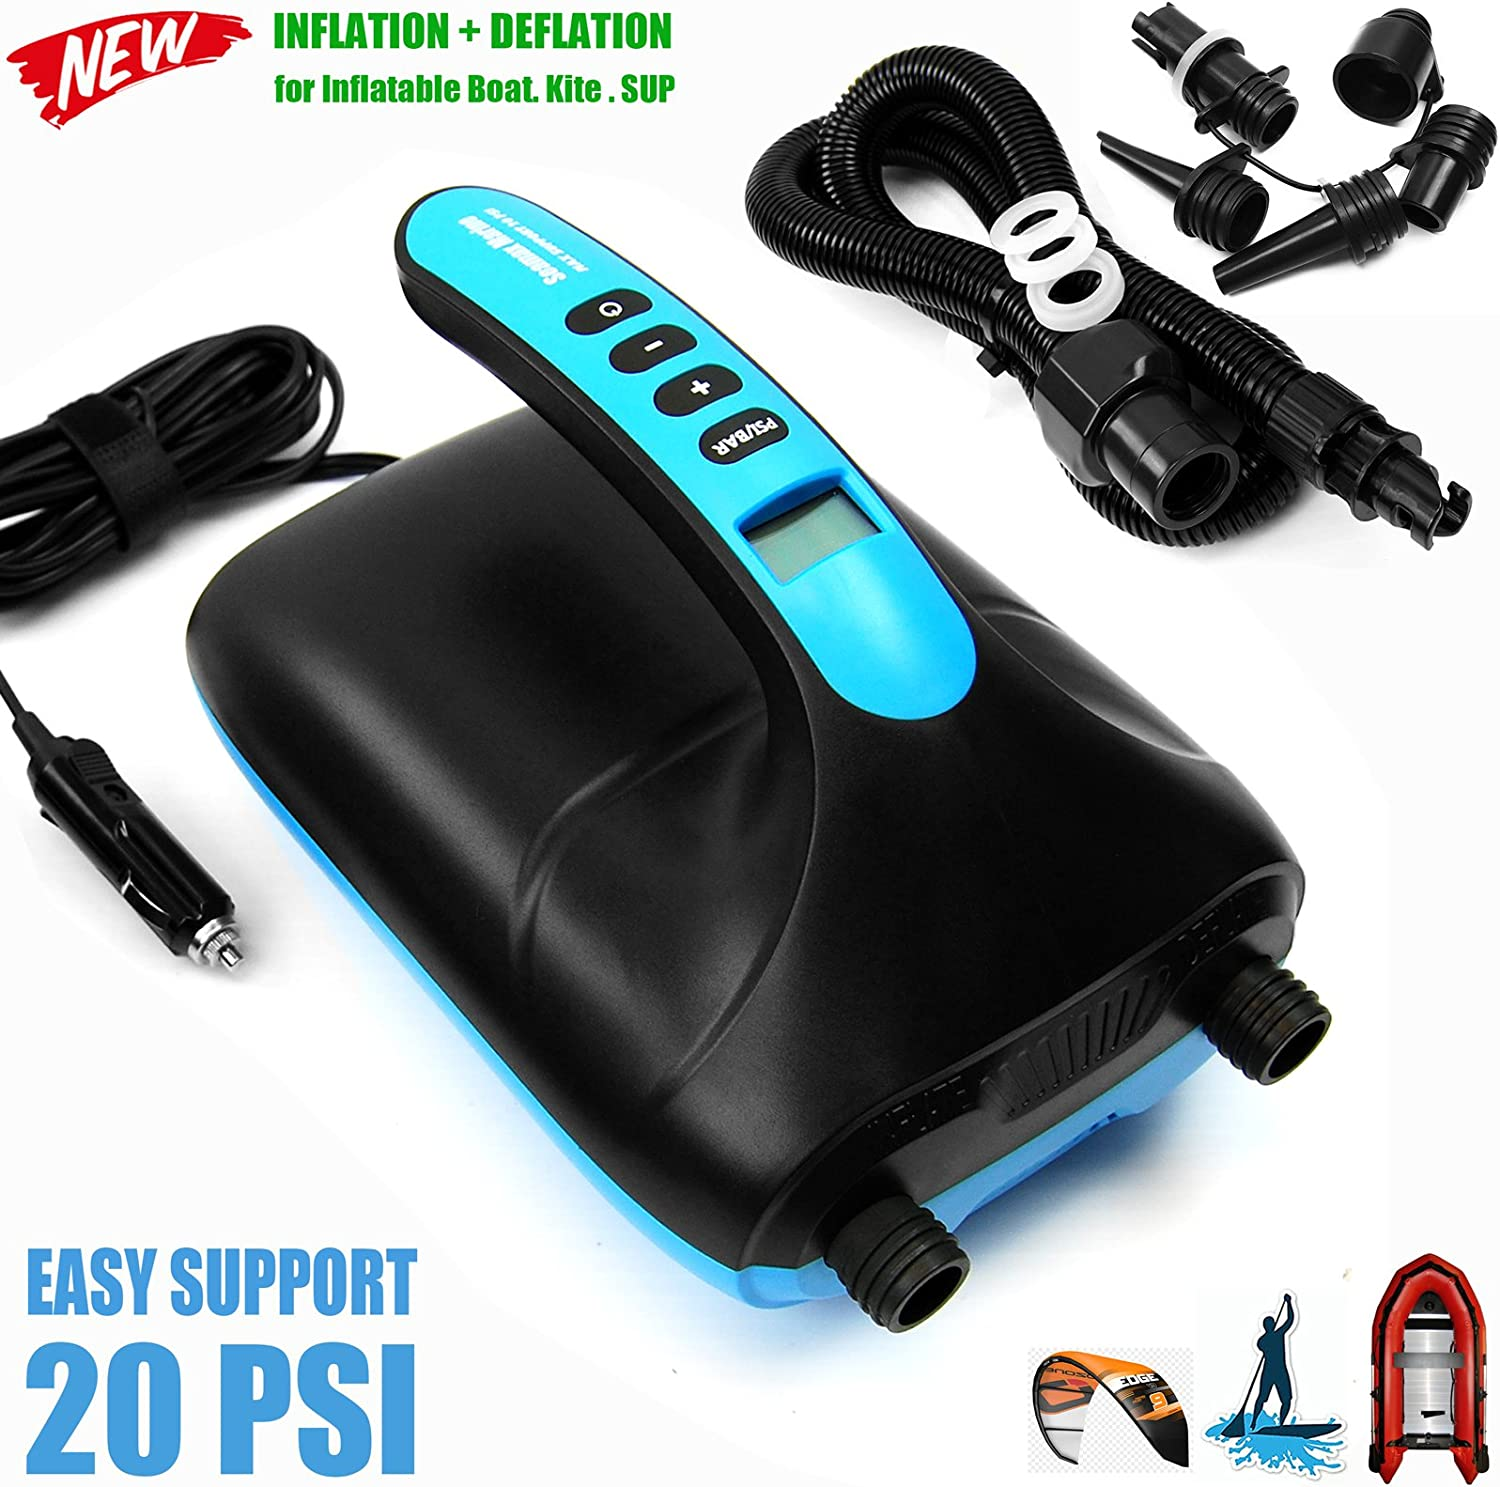 Seamax SUP20D 20PSI Double Stage Electric Air Pump for Inflatable SUP and Boat, New Version Intelligent Firmware with Built-in Temperature Sensor and Time Counter